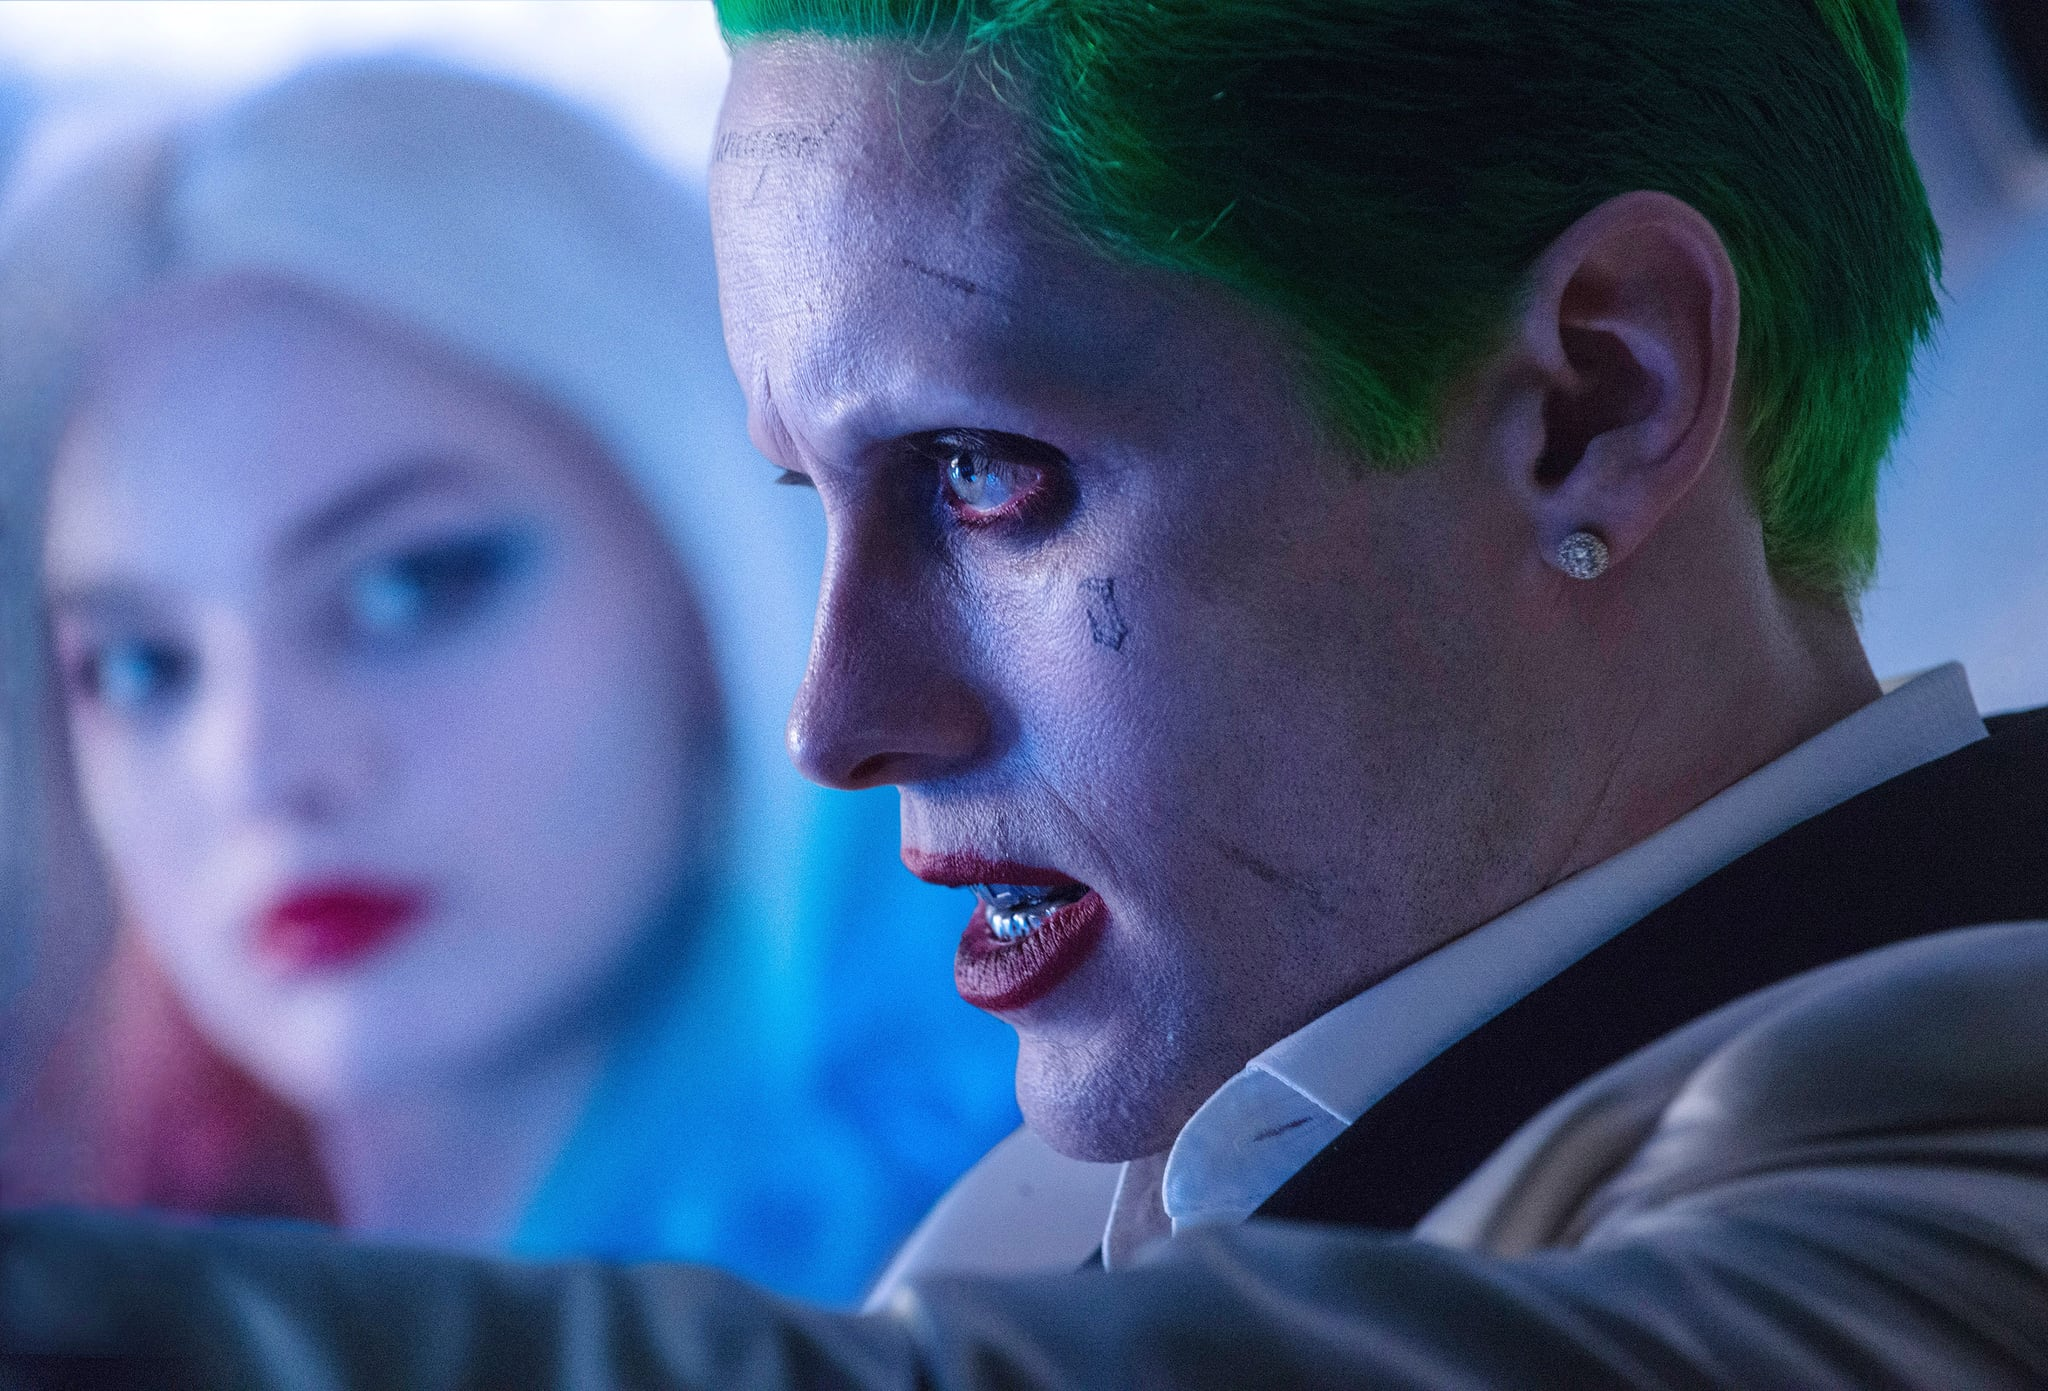 Jared Letos Joker Movie Details Popsugar Entertainment